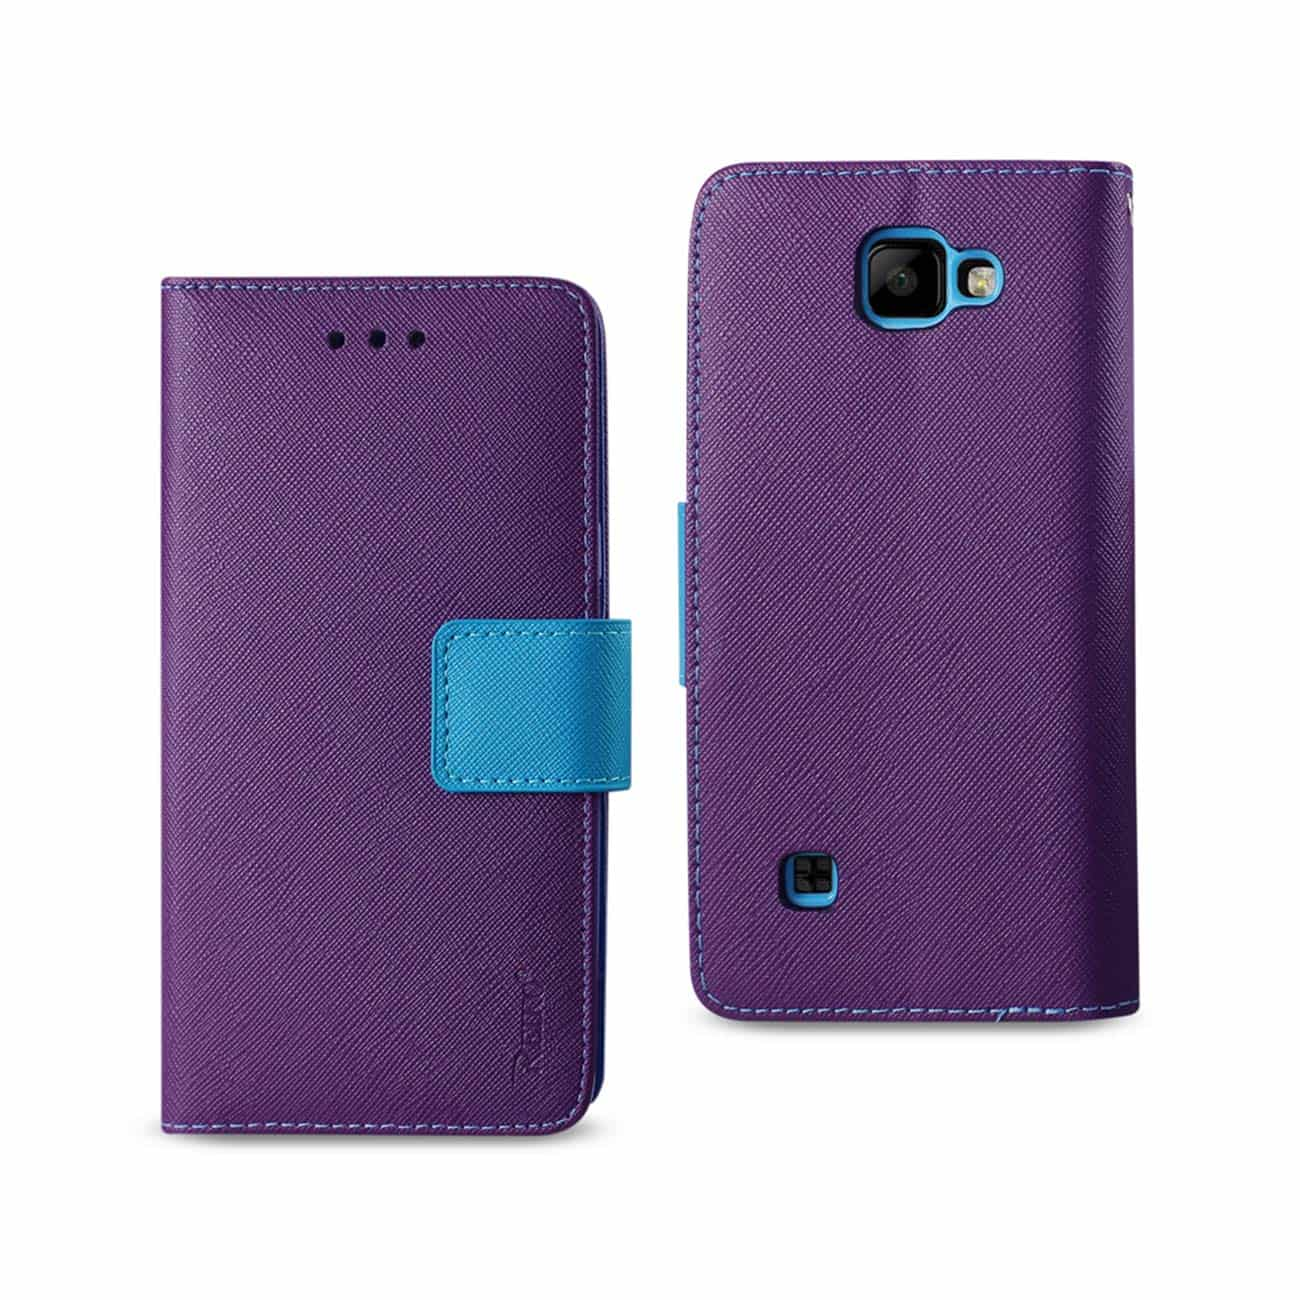 LG K3 3-IN-1 WALLET CASE IN PURPLE